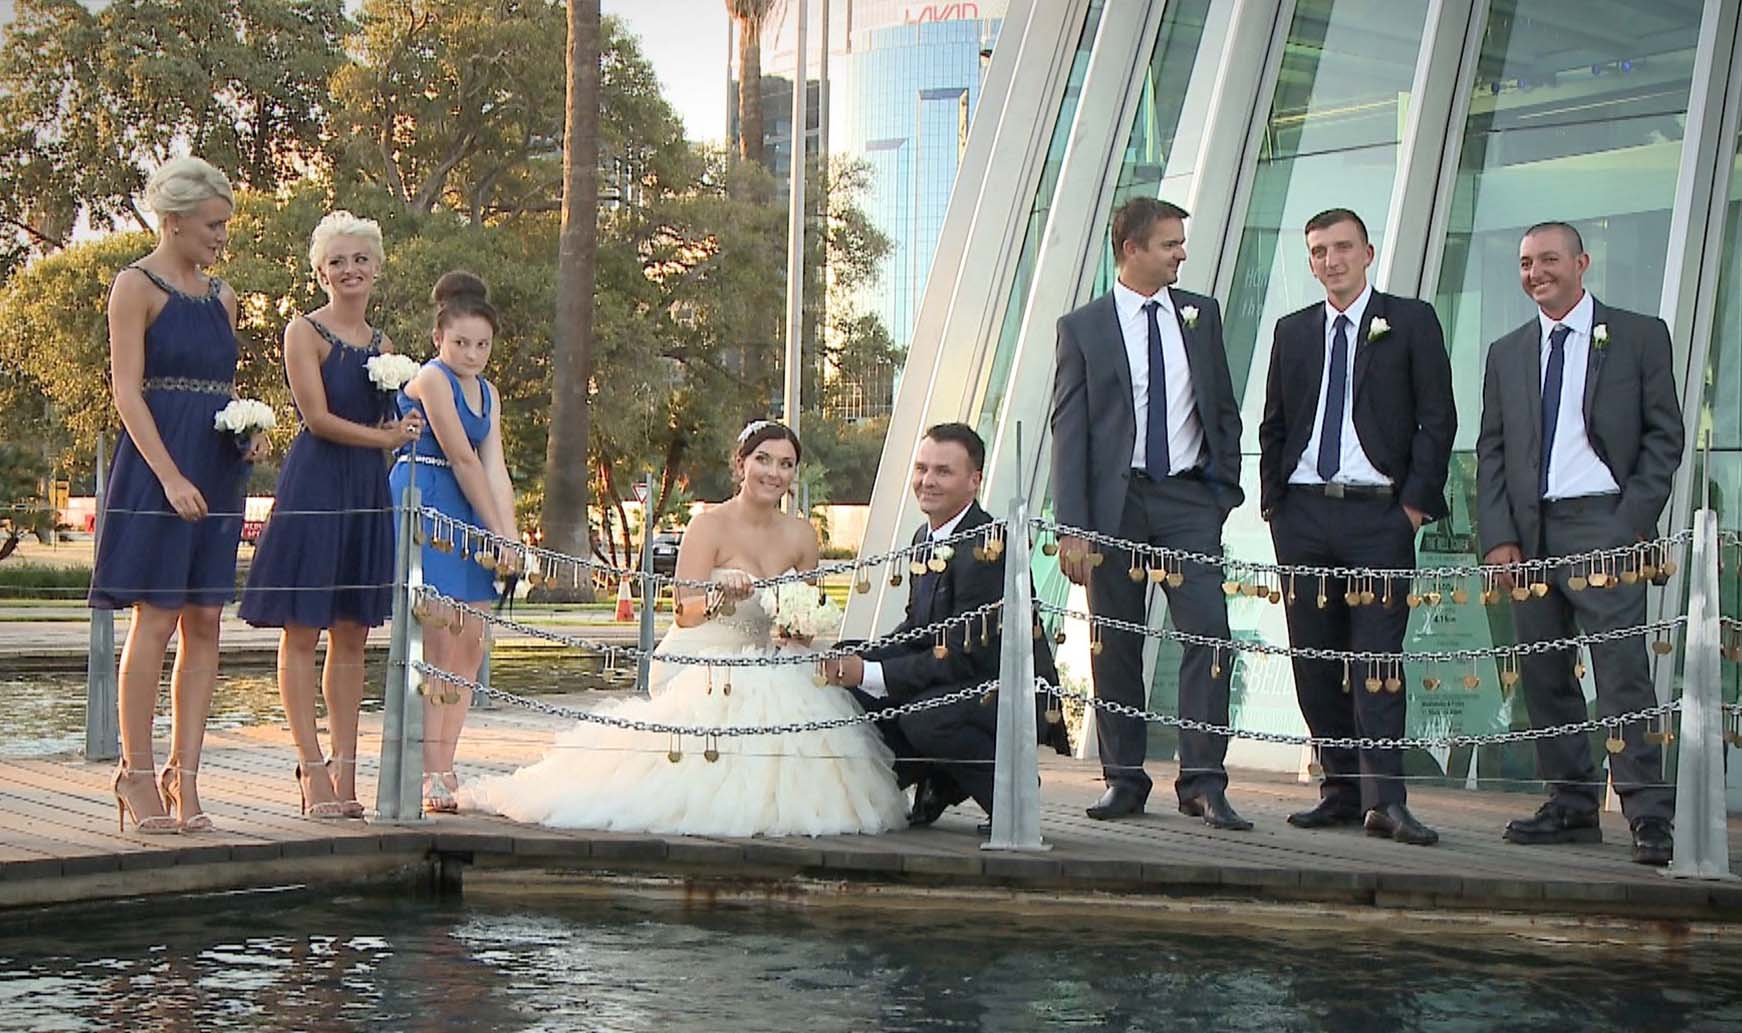 Wedding Video Production Perth WA